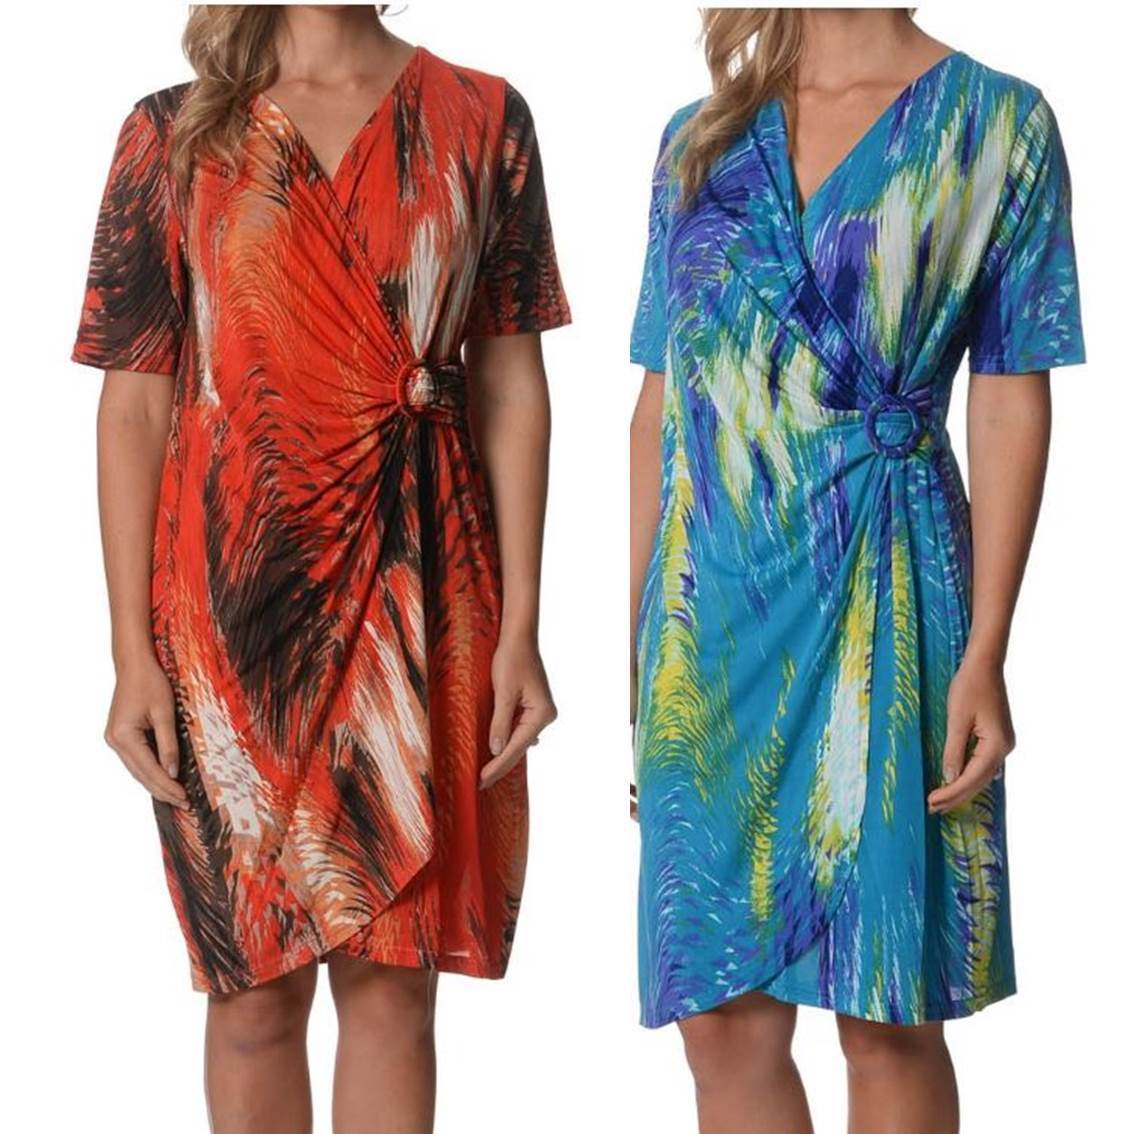 Drape Dress Lilia Whispers Red Turquoise Plus Sizes 10 18 Women Crossover